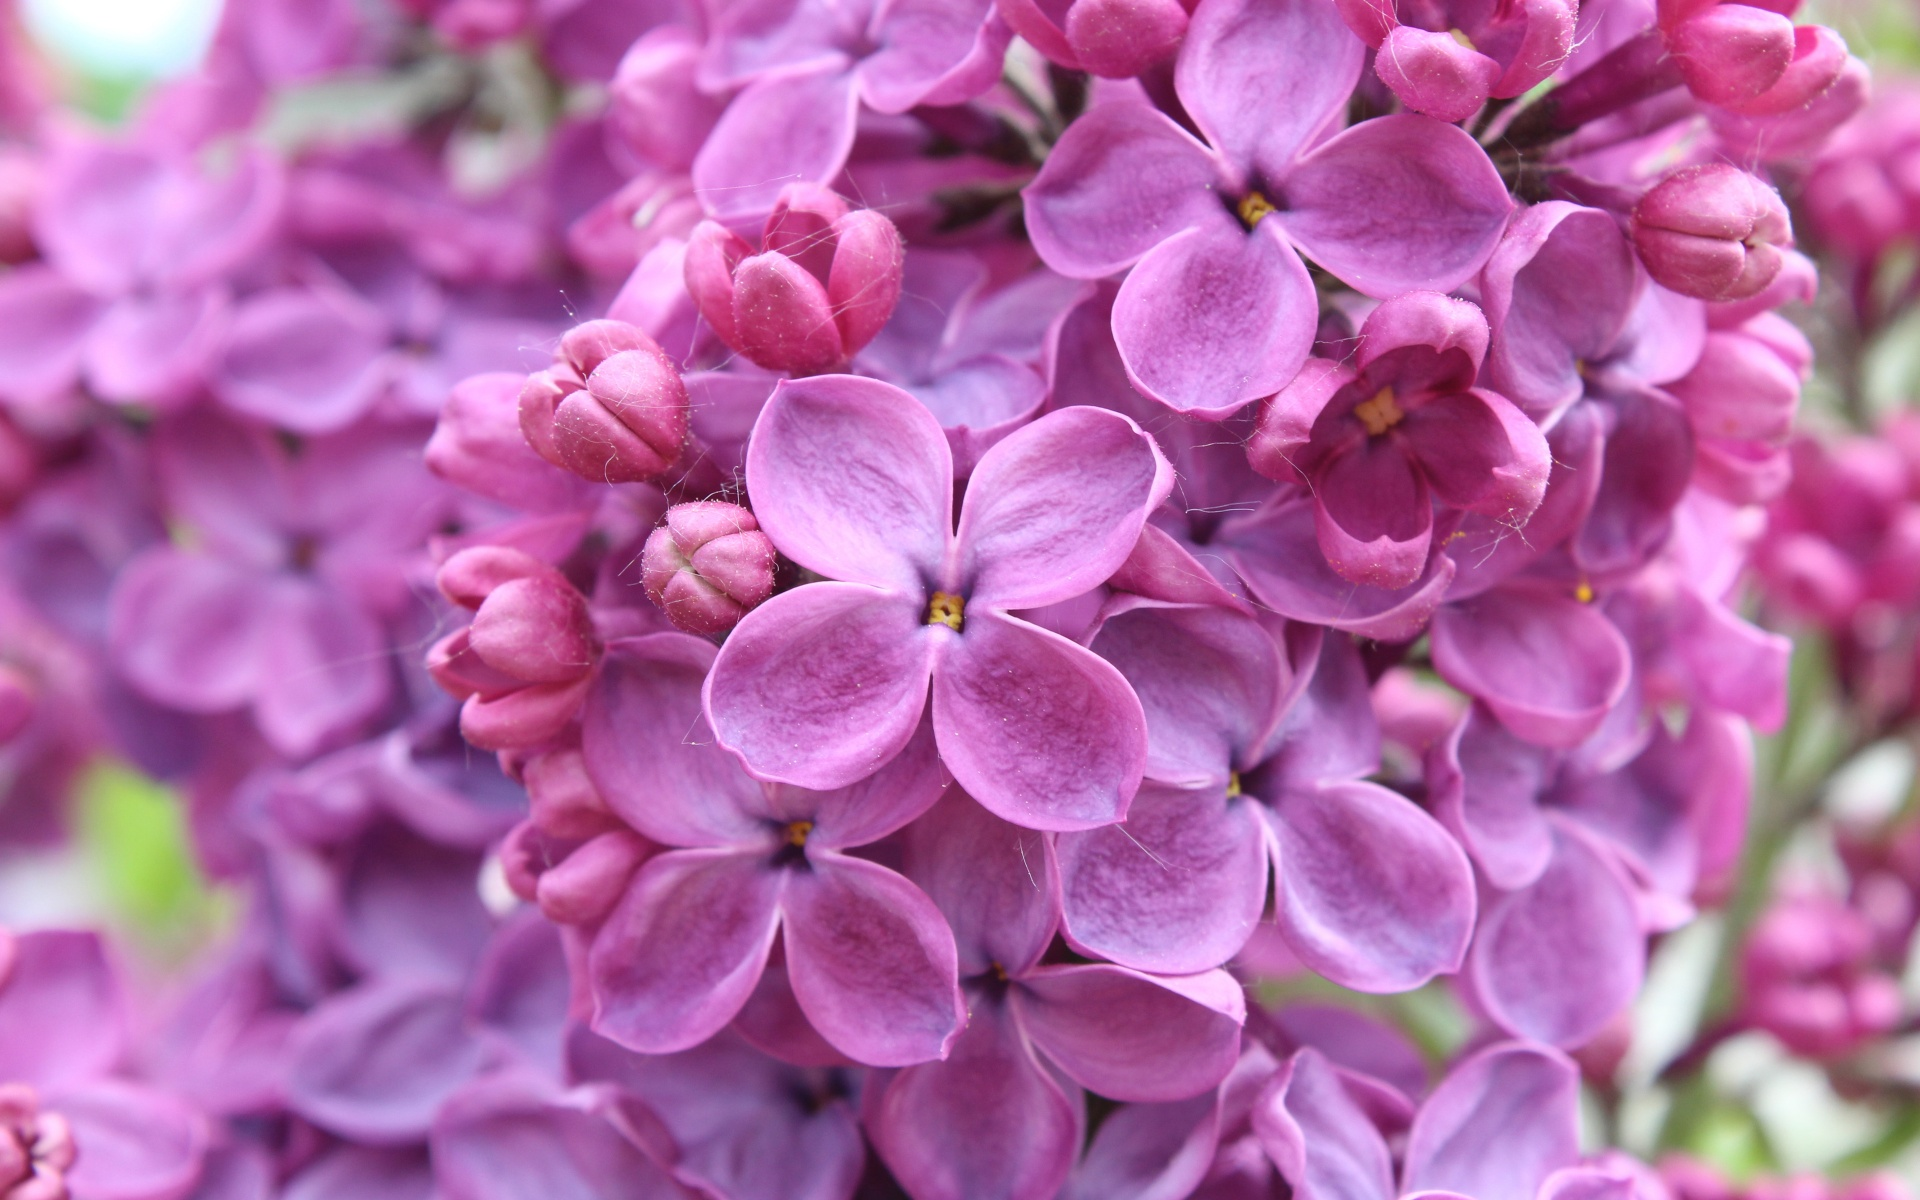 lilac flower wallpaper jpg - photo #7